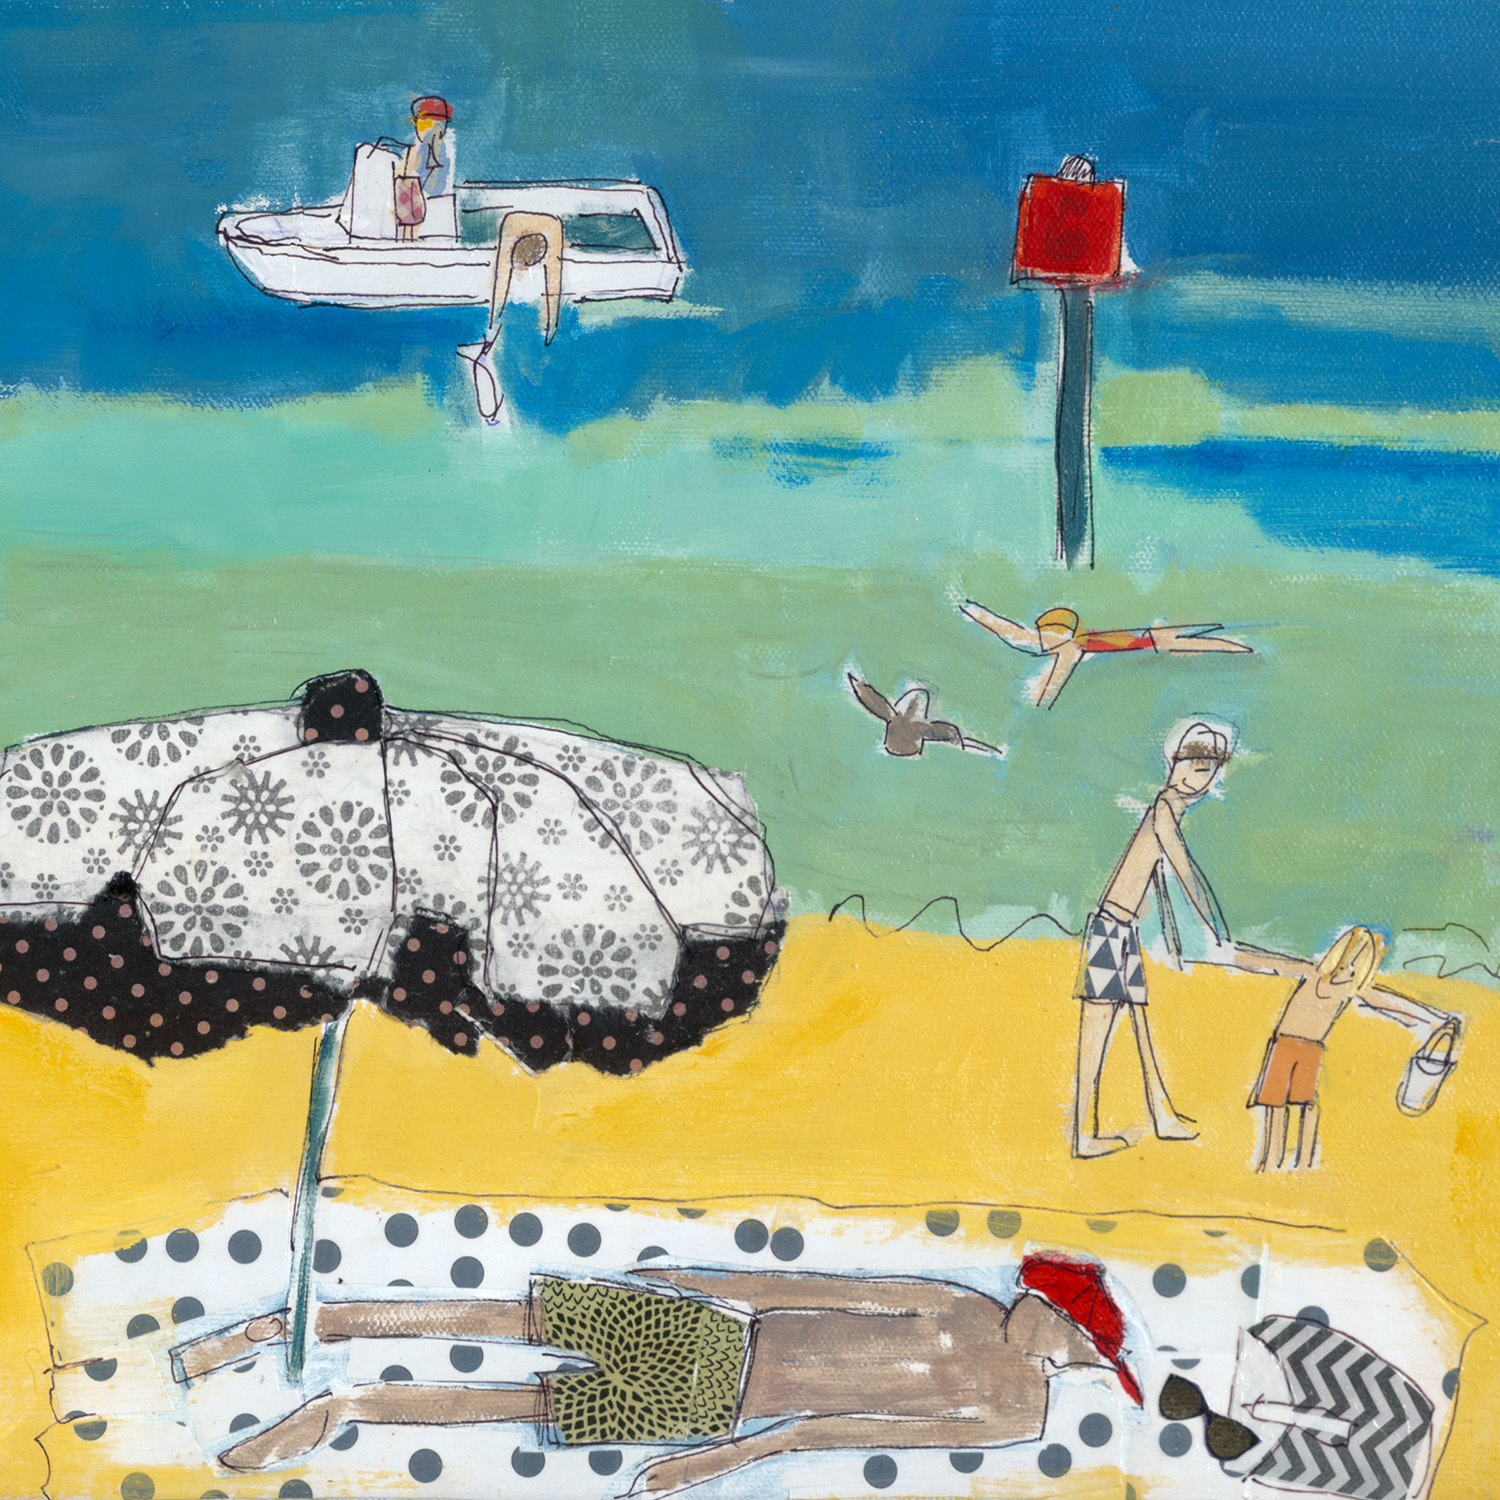 lucy paige artist key west beach day series collage Smathers Beach C .jpg